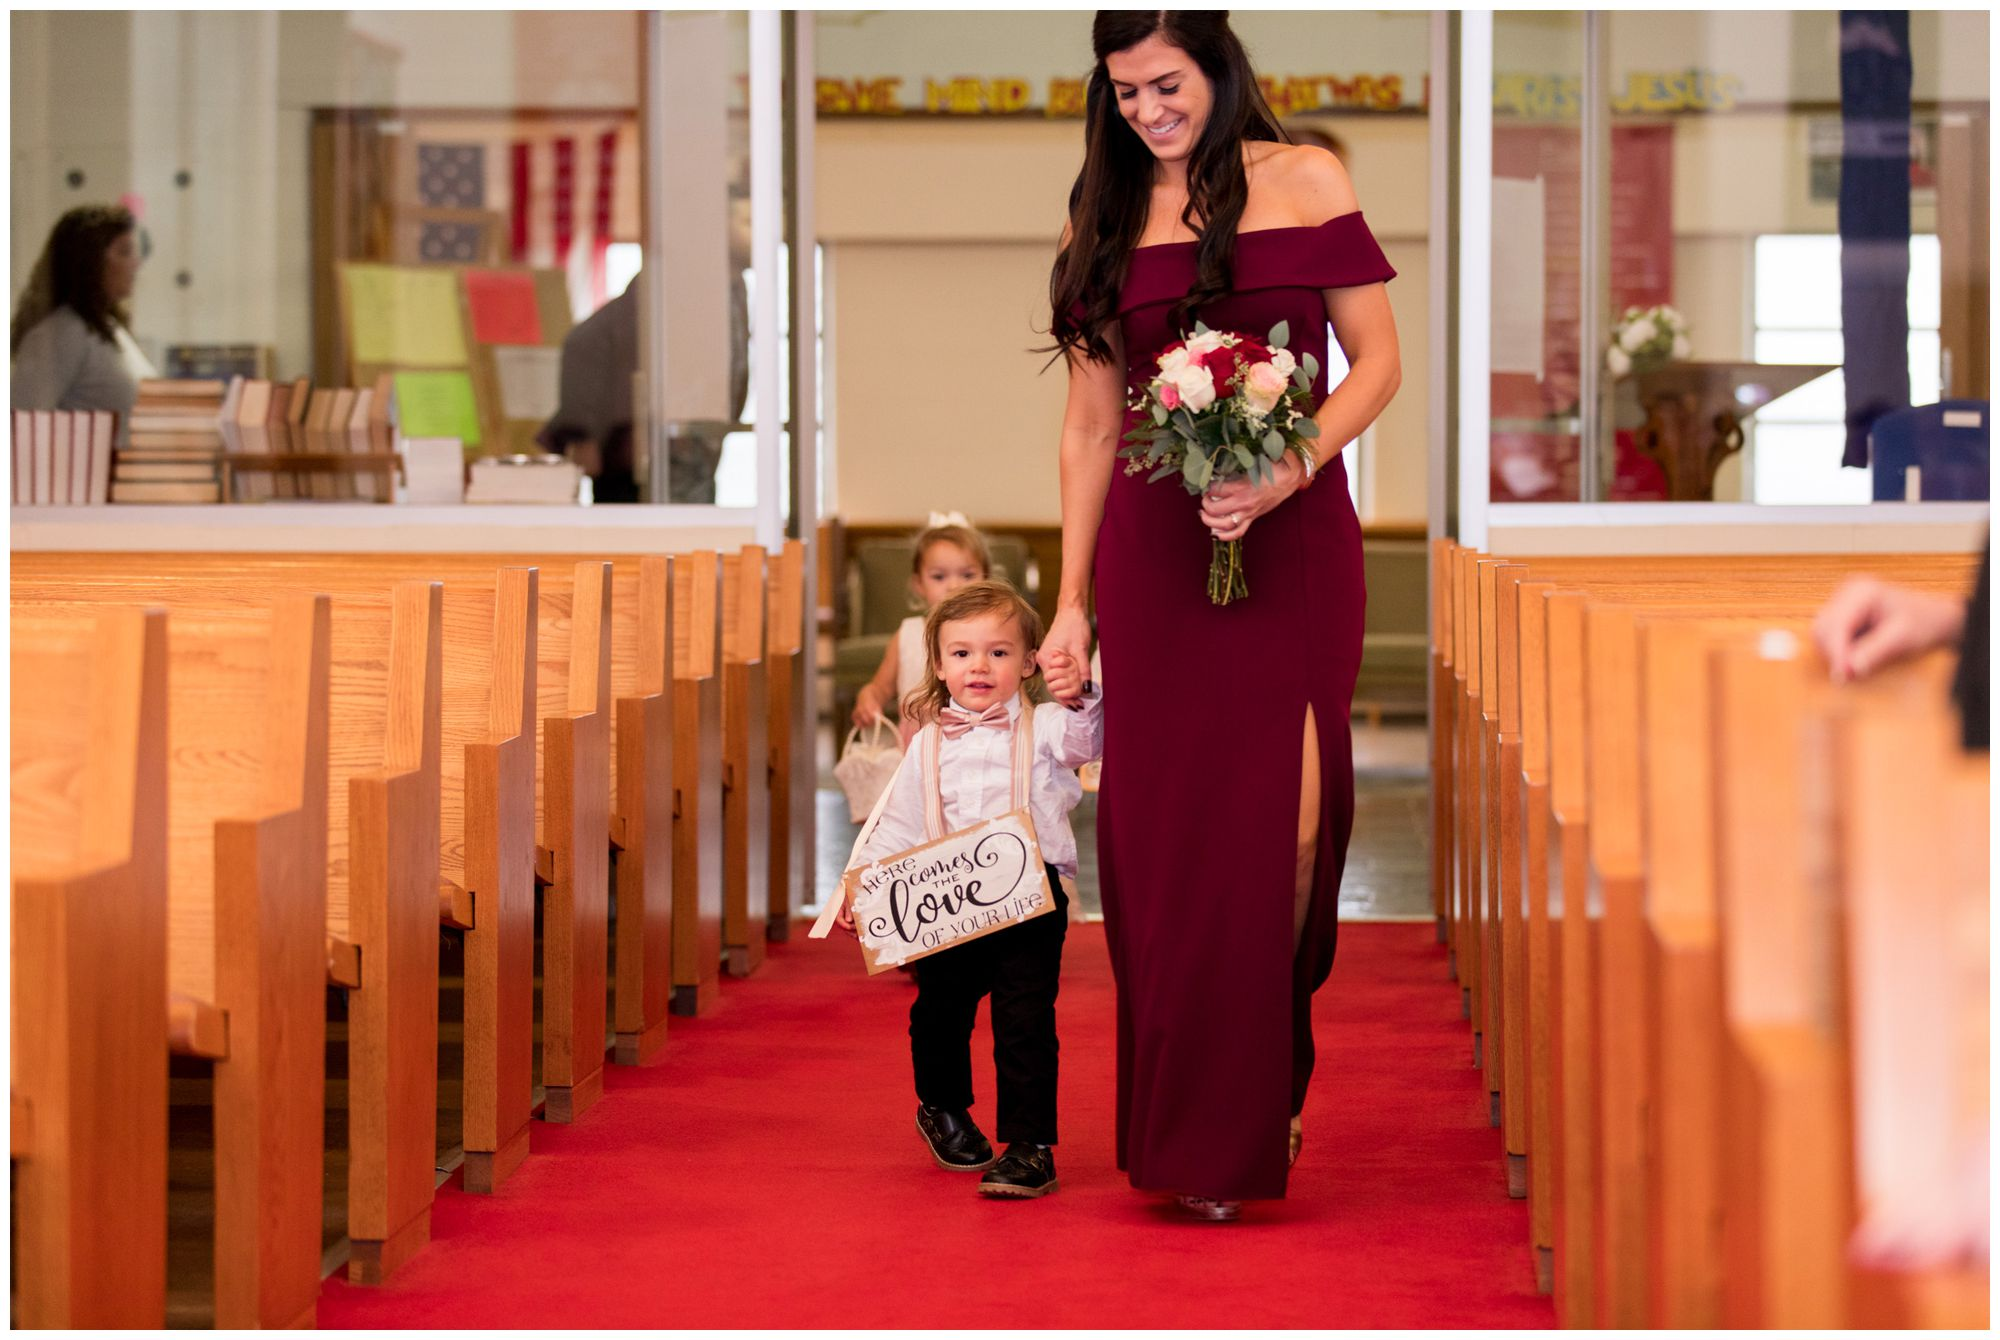 bridemaid and ring bearer walk down aisle at Zion Lutheran Church during Portland Indiana wedding